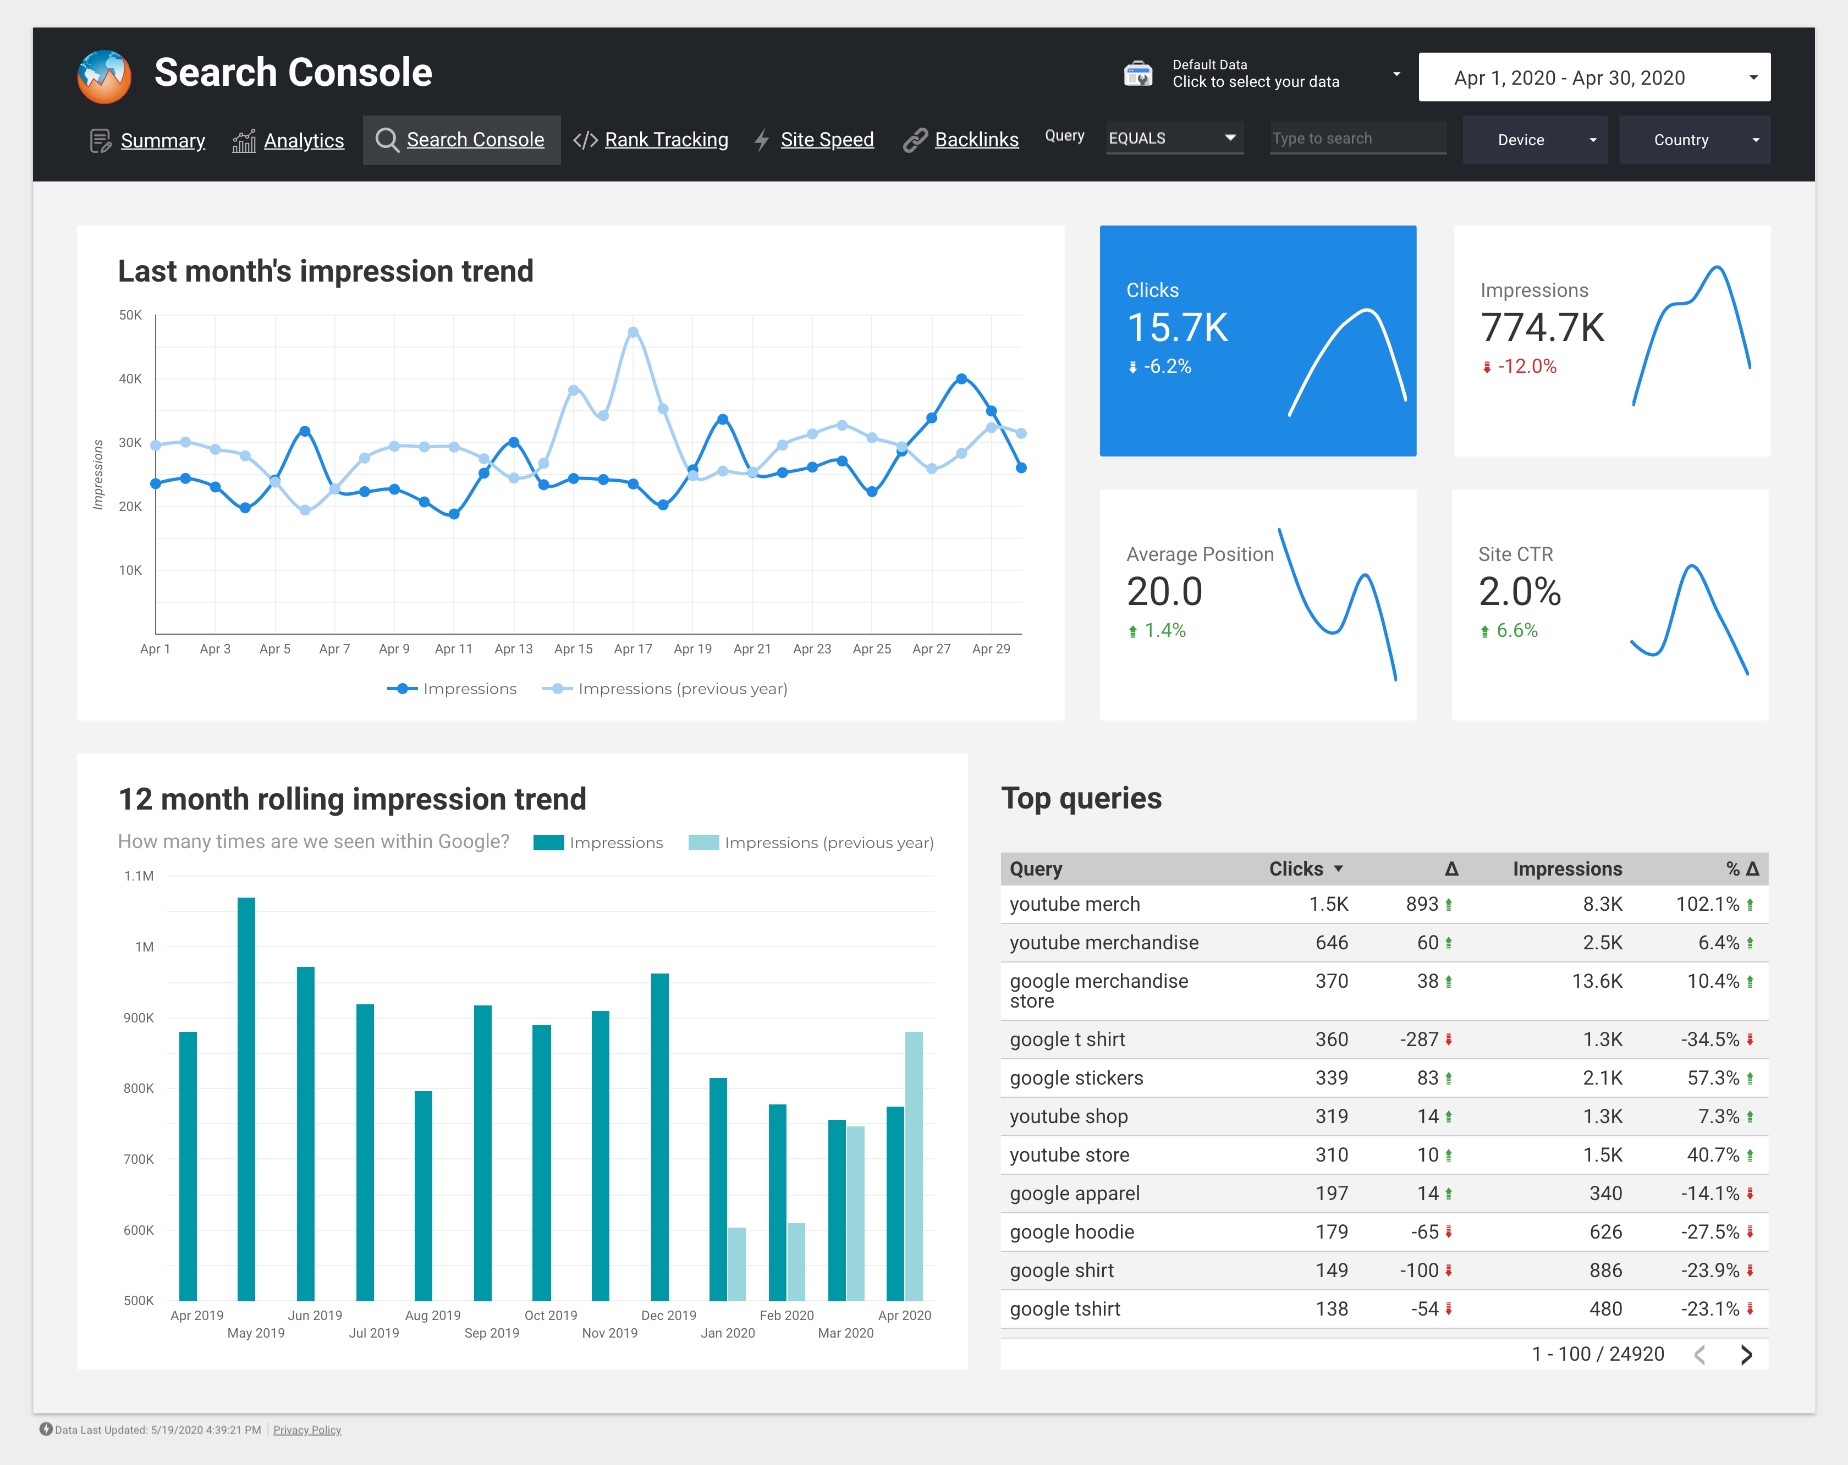 Screenshot of a Google Search Console dashboard showing multiple charts, KPI scorecards, and a top queries table.